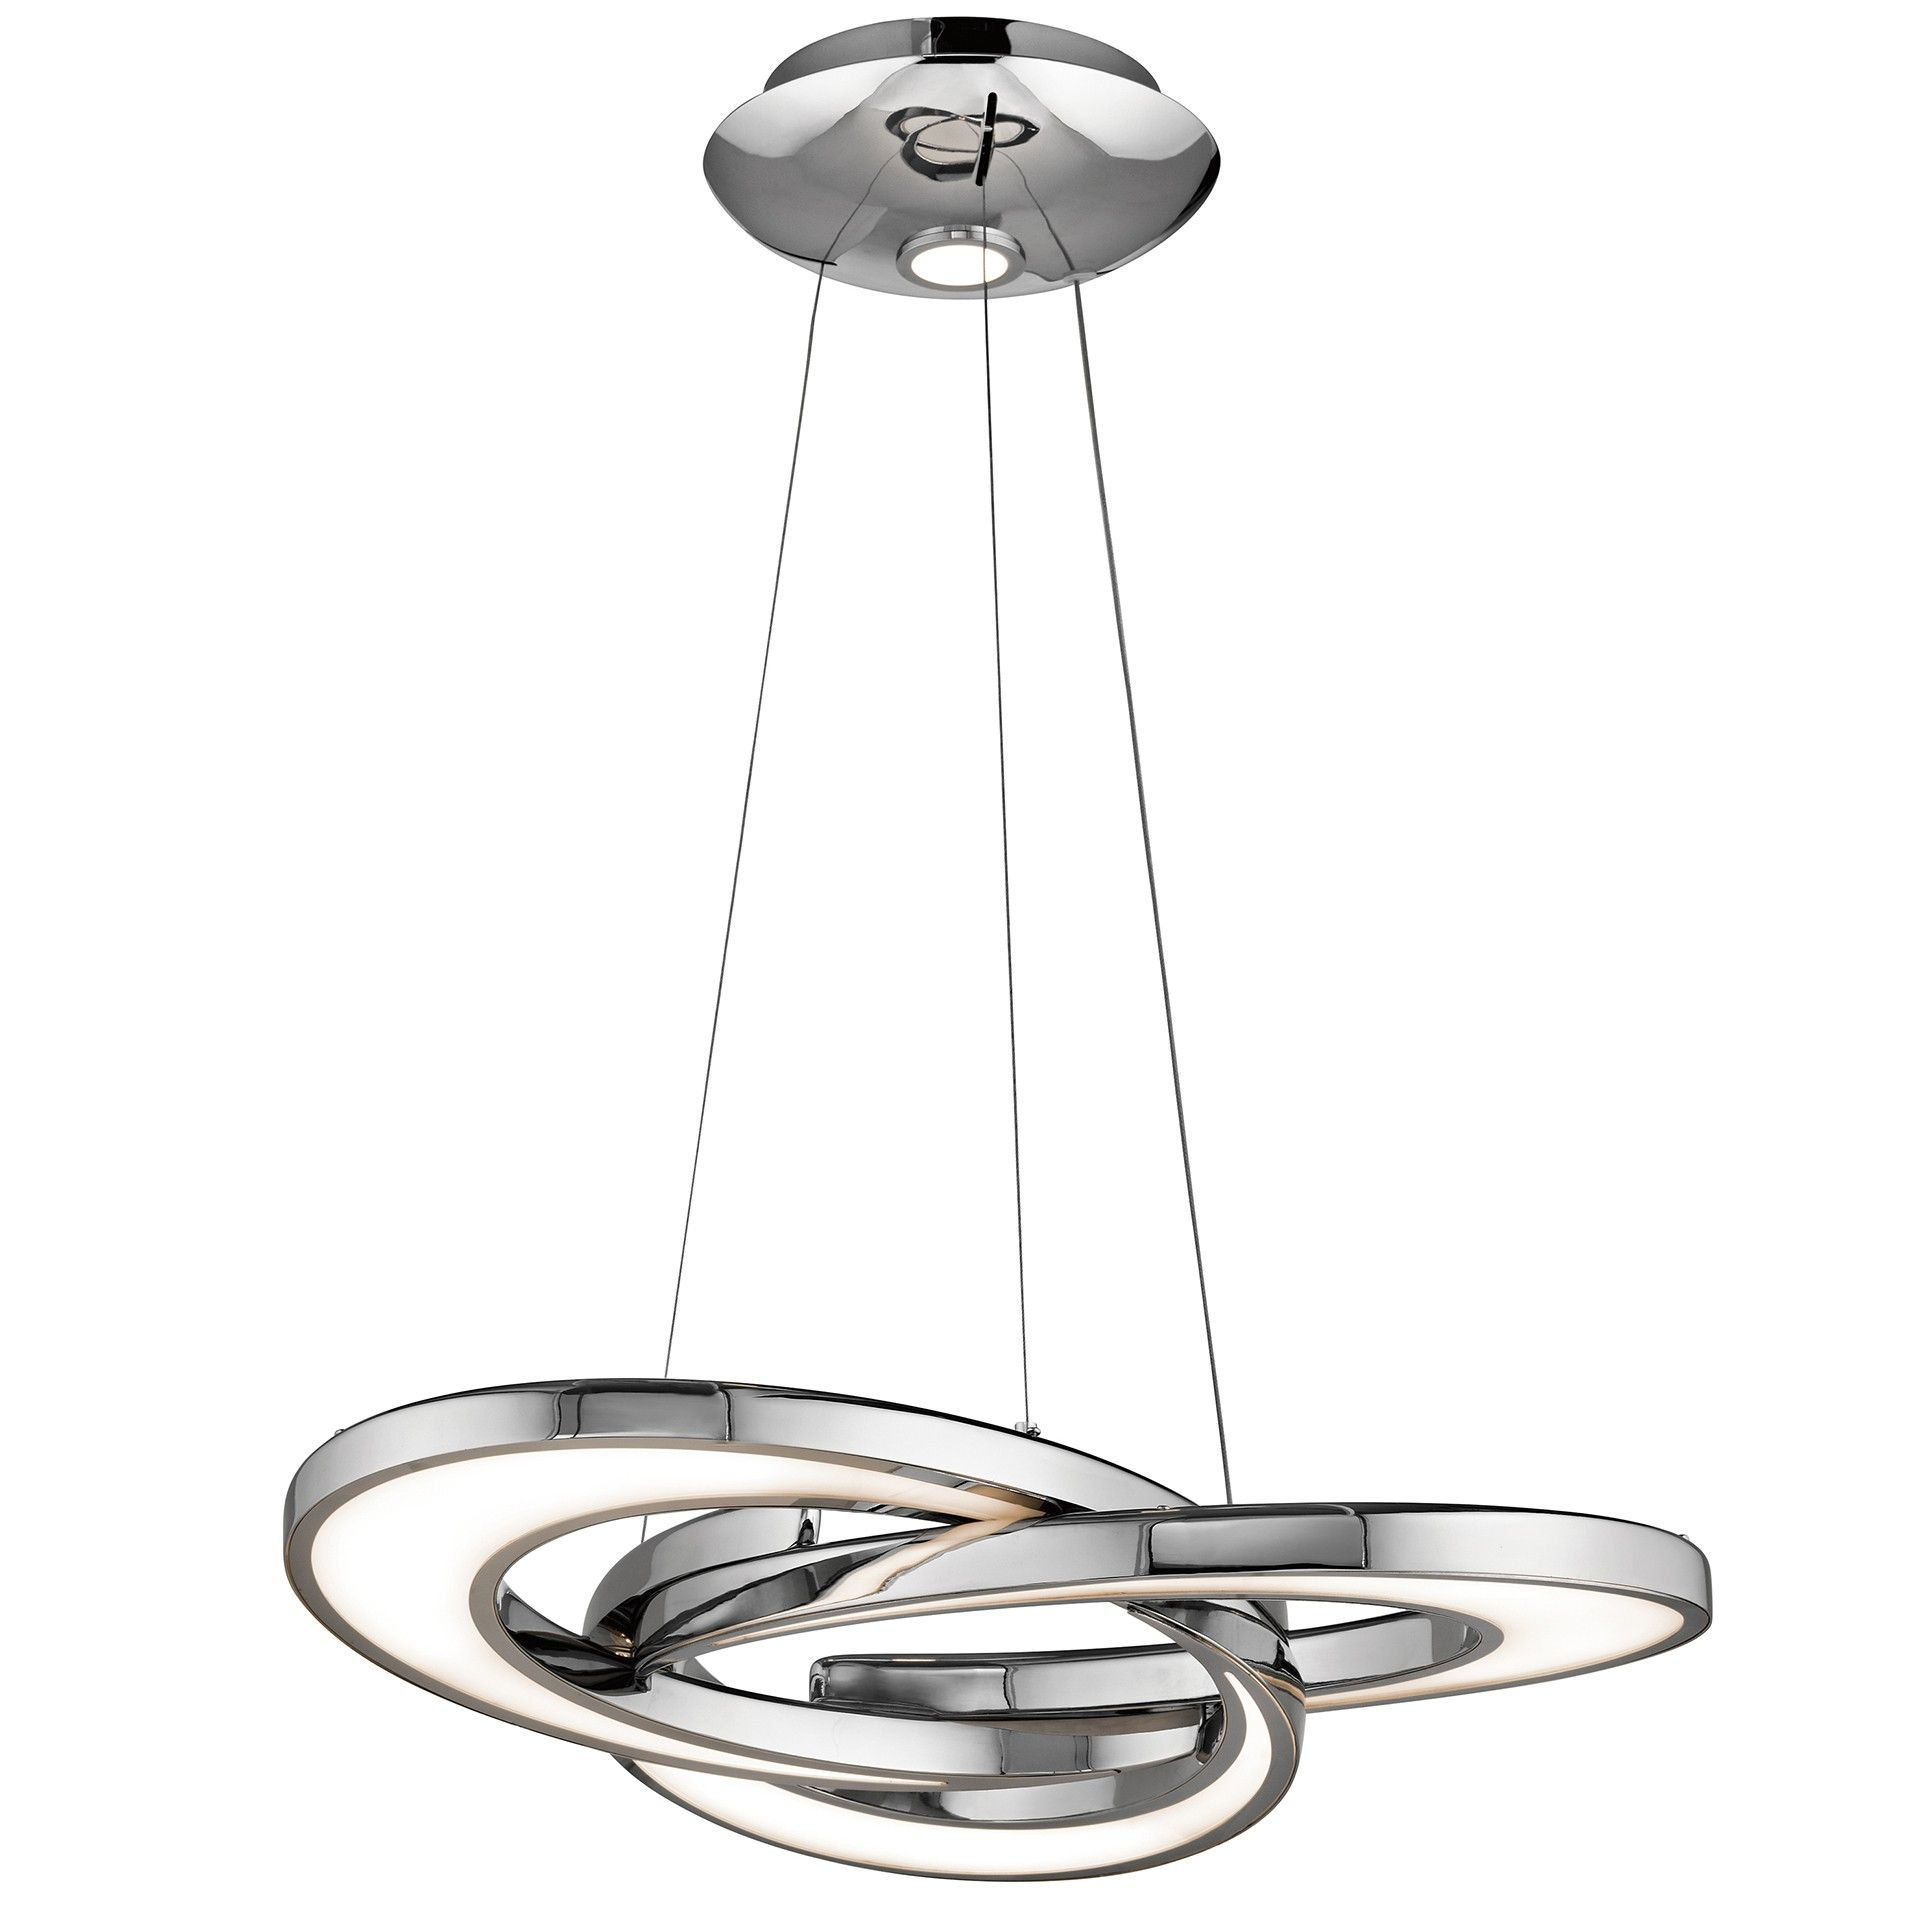 Elan Destiny LED Chandelier Chrome Finish with Etched